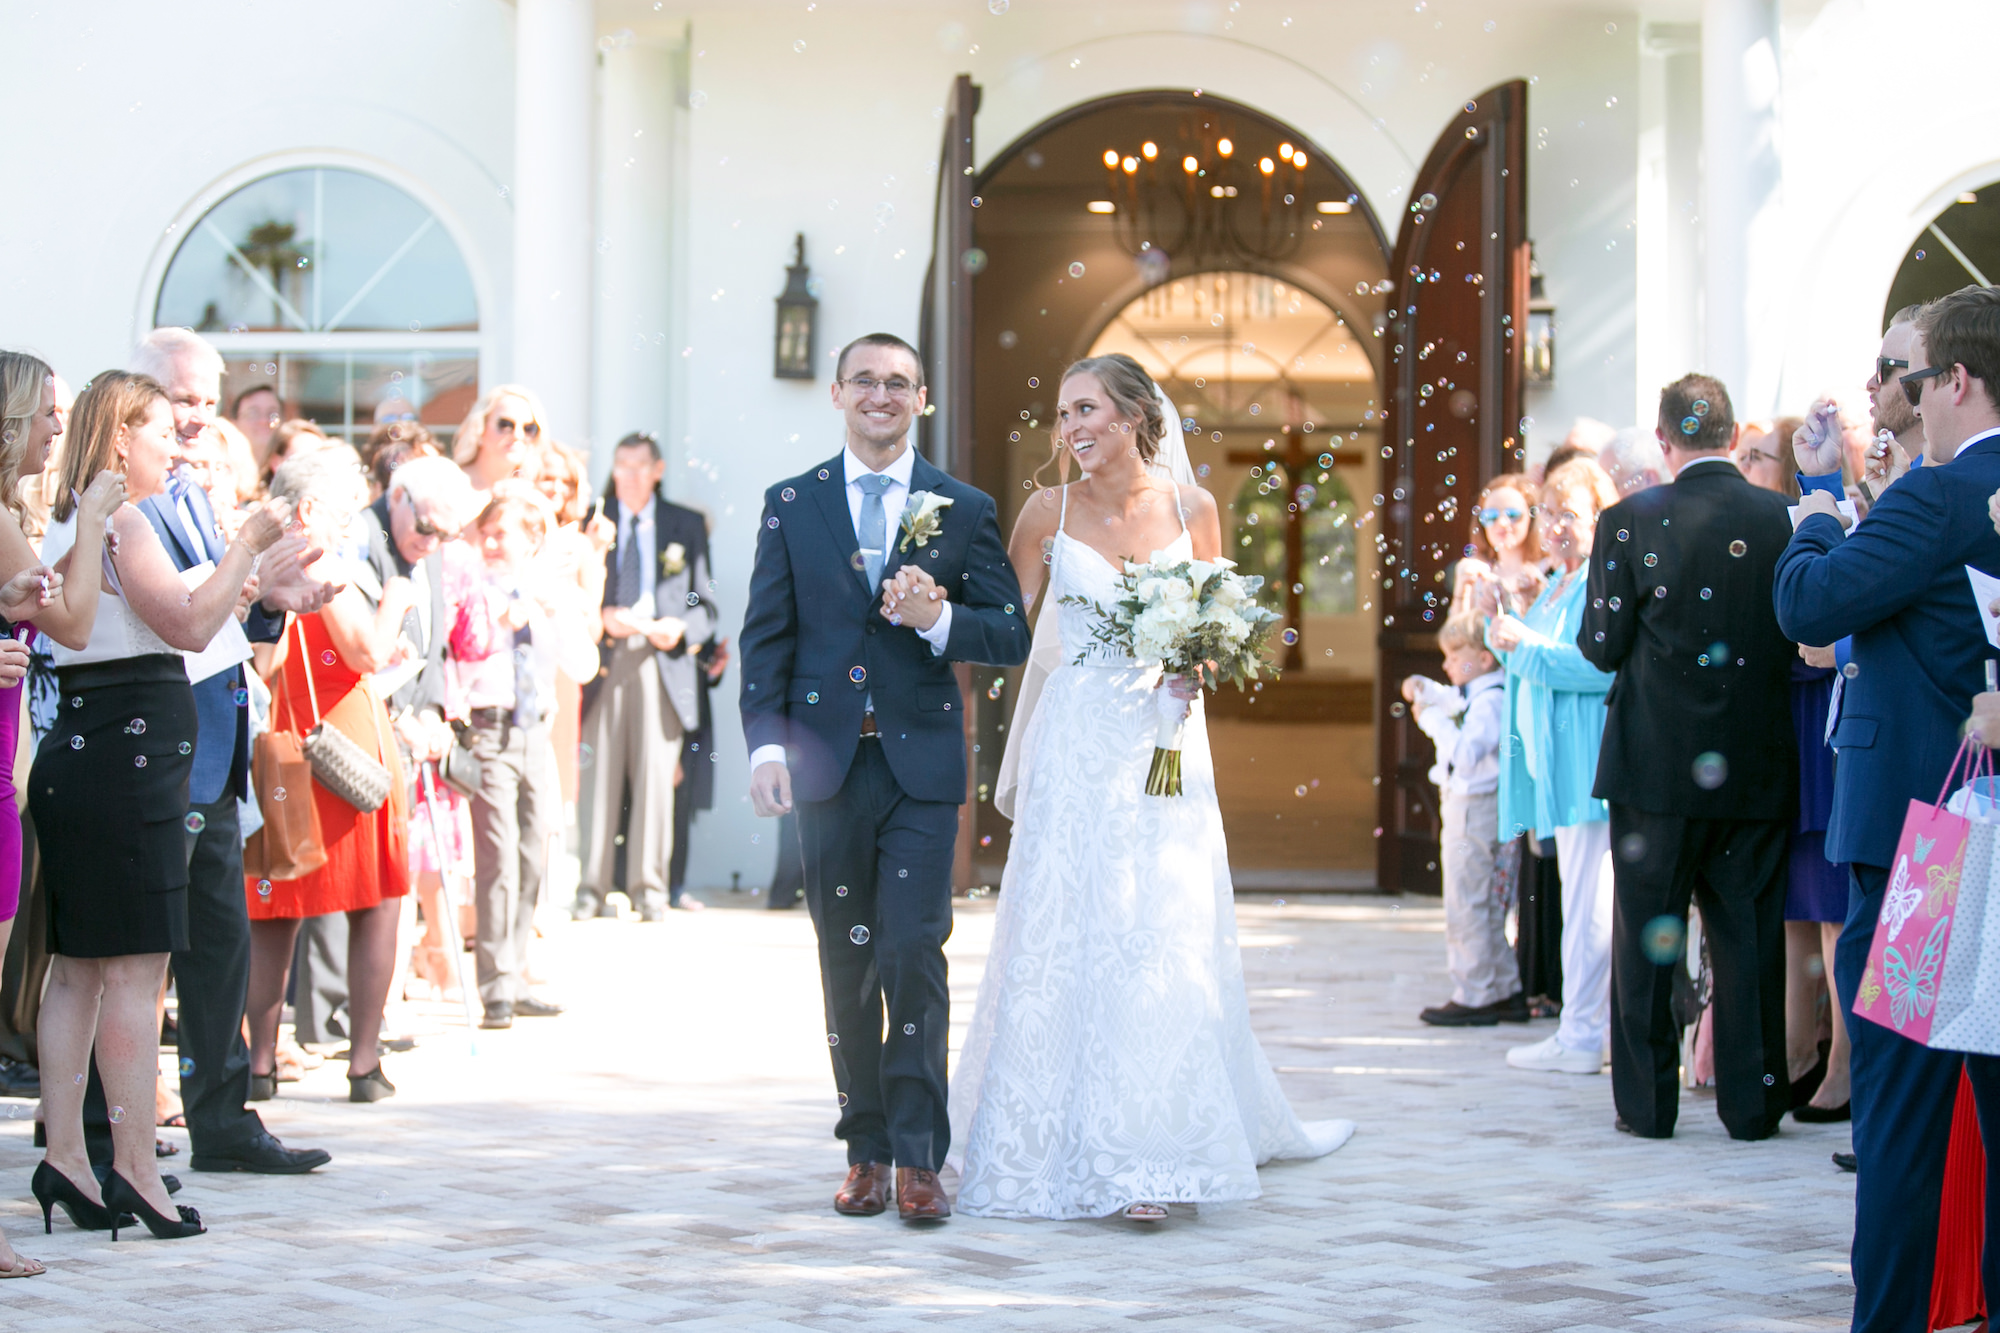 Classic Bride and Groom Wedding Ceremony Bubble Exit   Tampa Bay Wedding Photographer Carrie Wildes Photography   Safety Harbor Wedding Venue Harborside Chapel   Wedding Planner Love Lee Lane